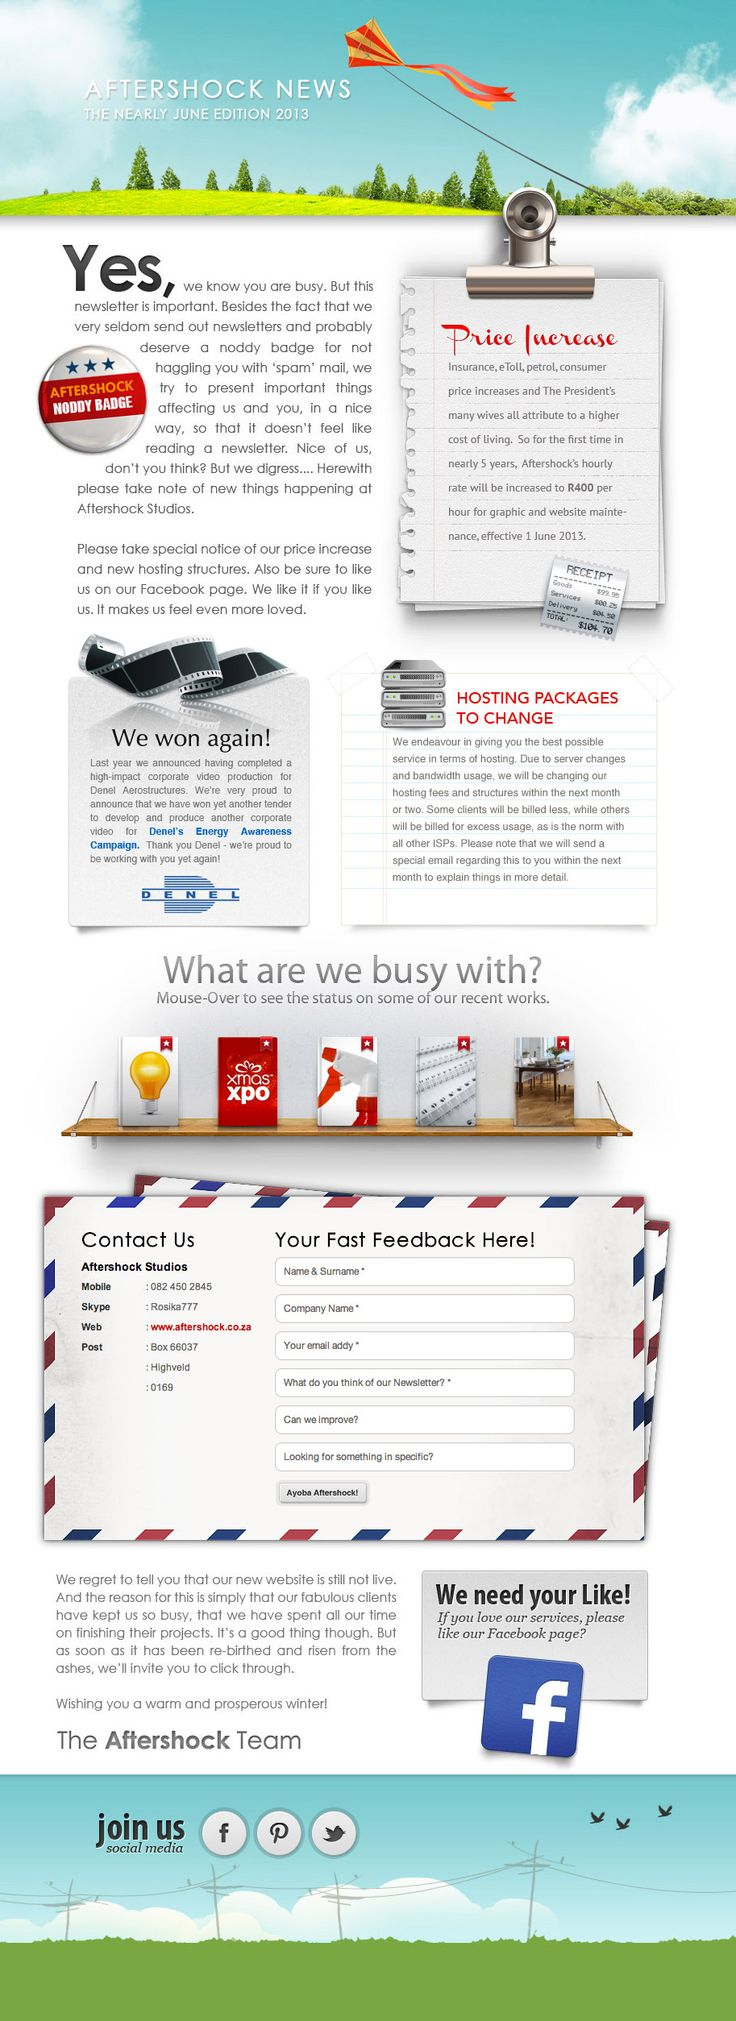 In May 2013, we created a newsletter for our clients with an online form. A single graphic with a click through was distributed to our clients.